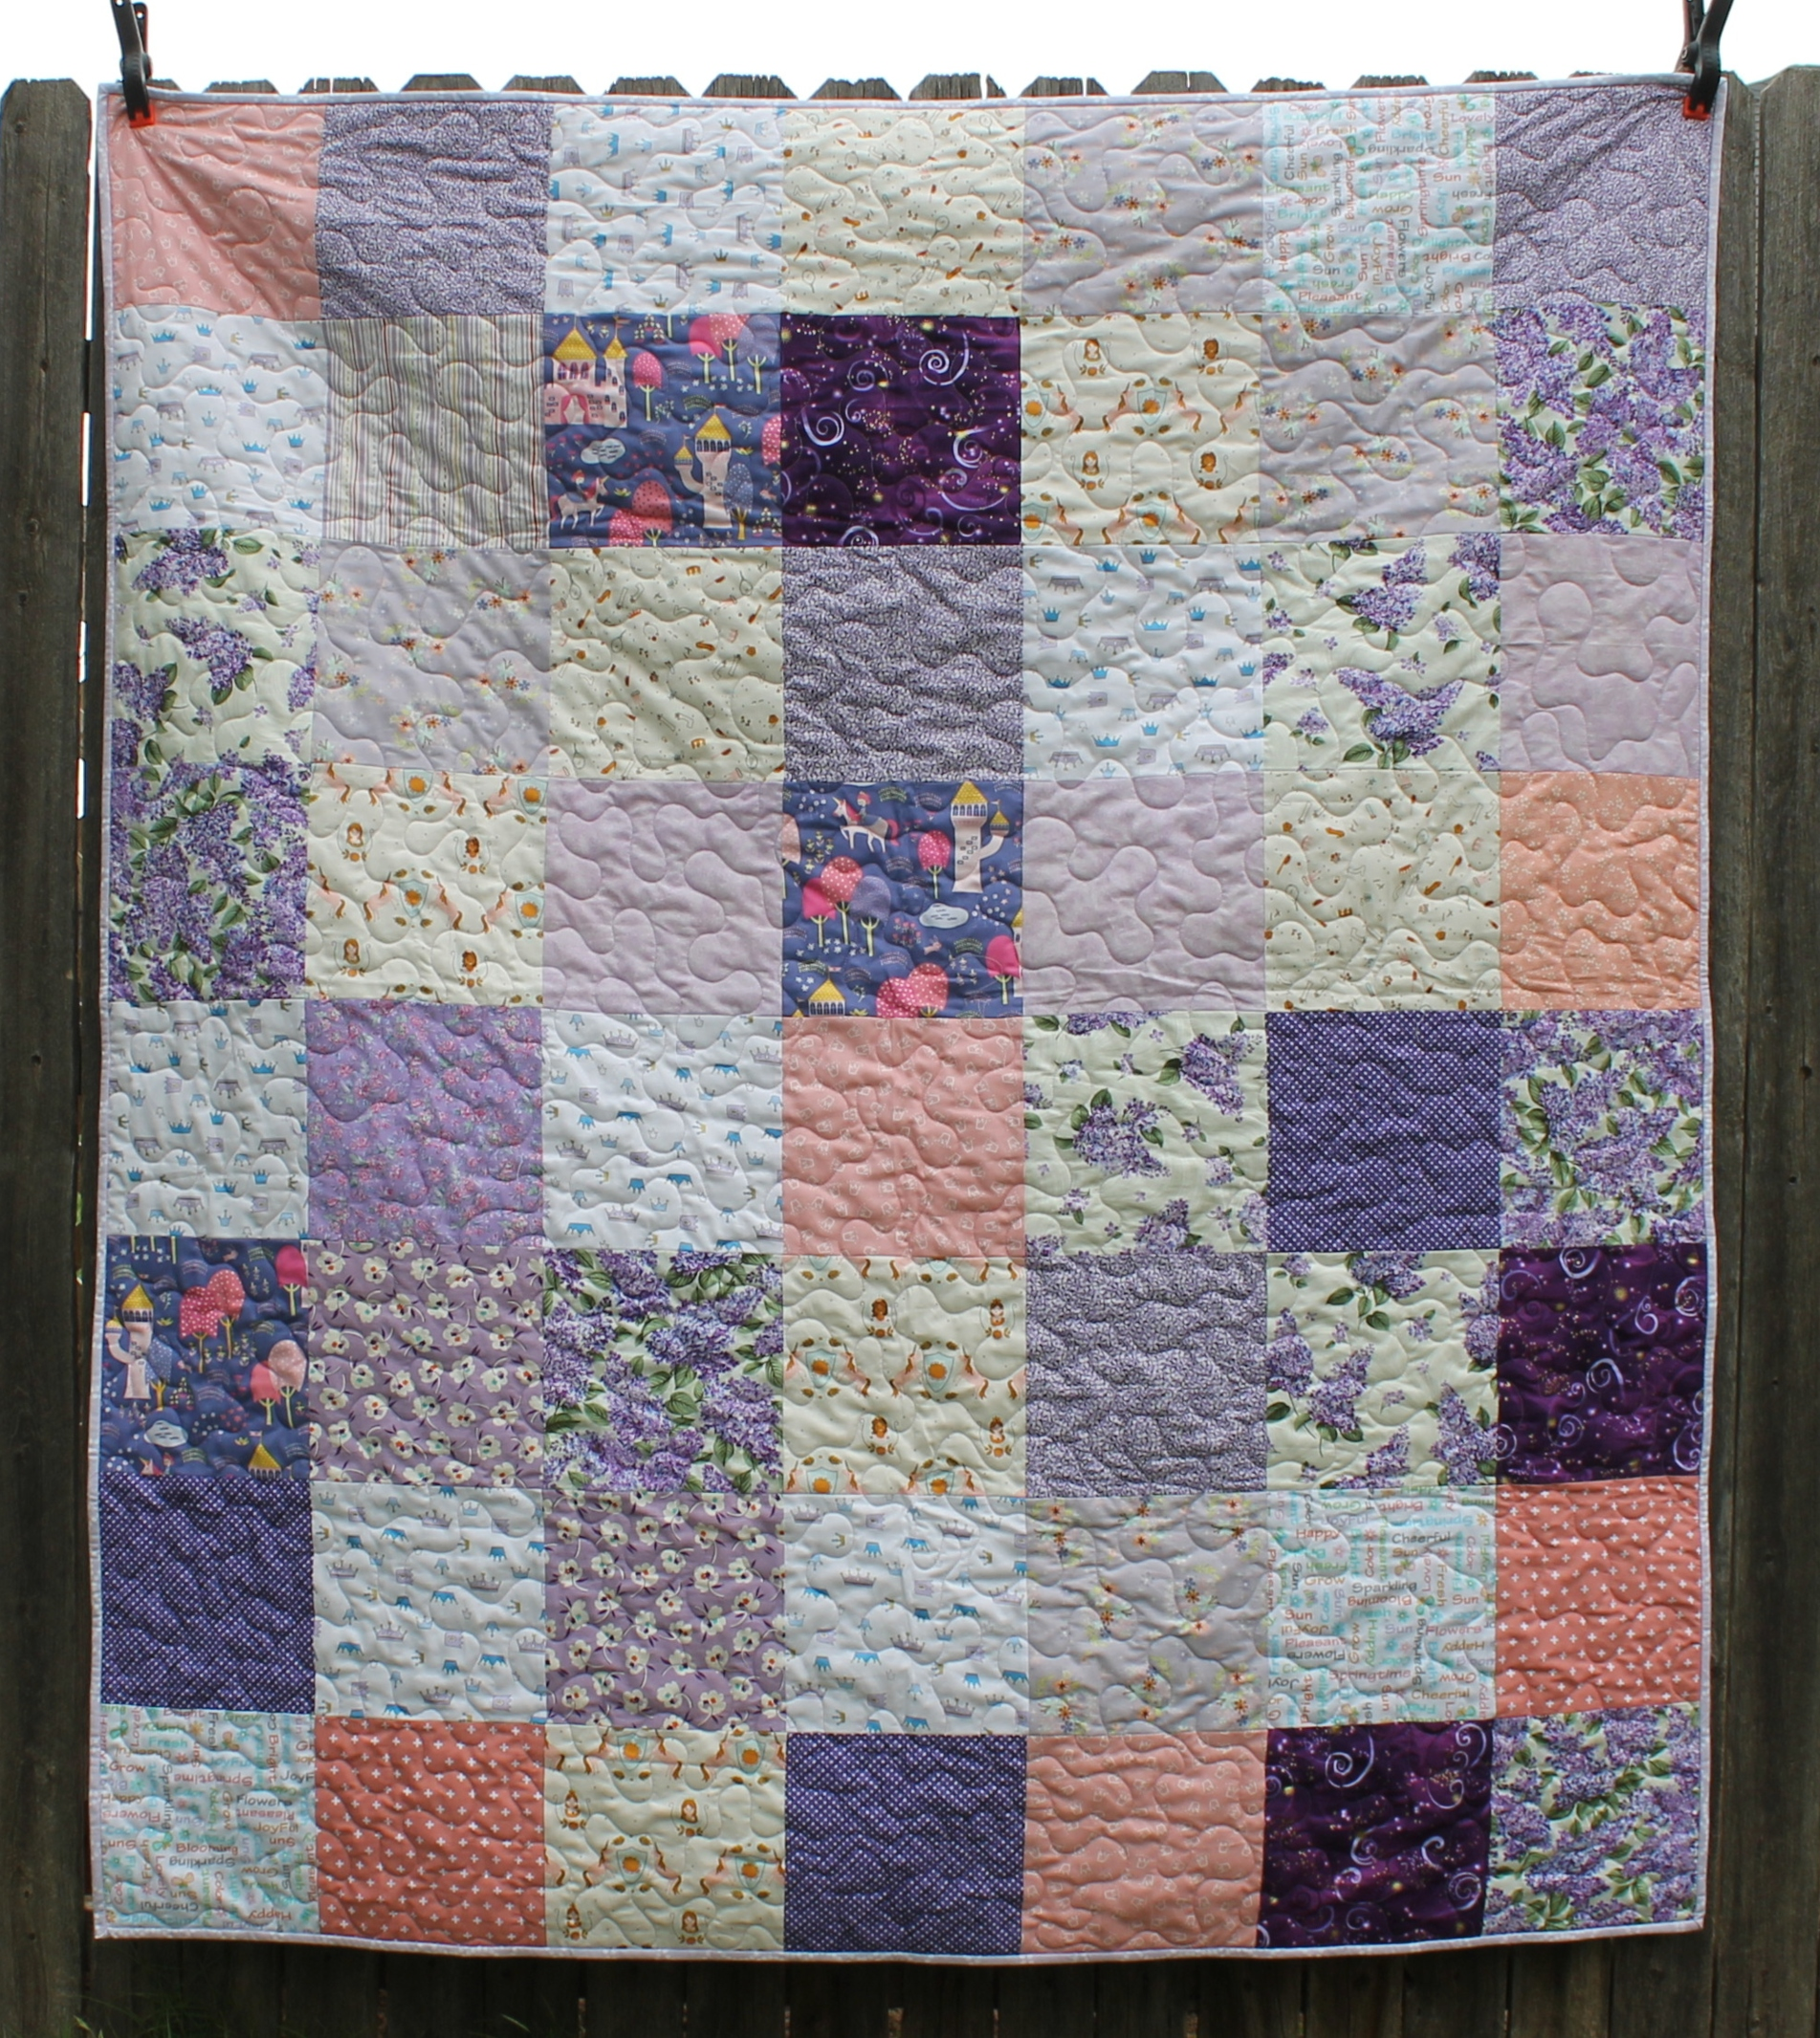 Spokane Lilac Day Parade Quilts by Katie Mae Quilts